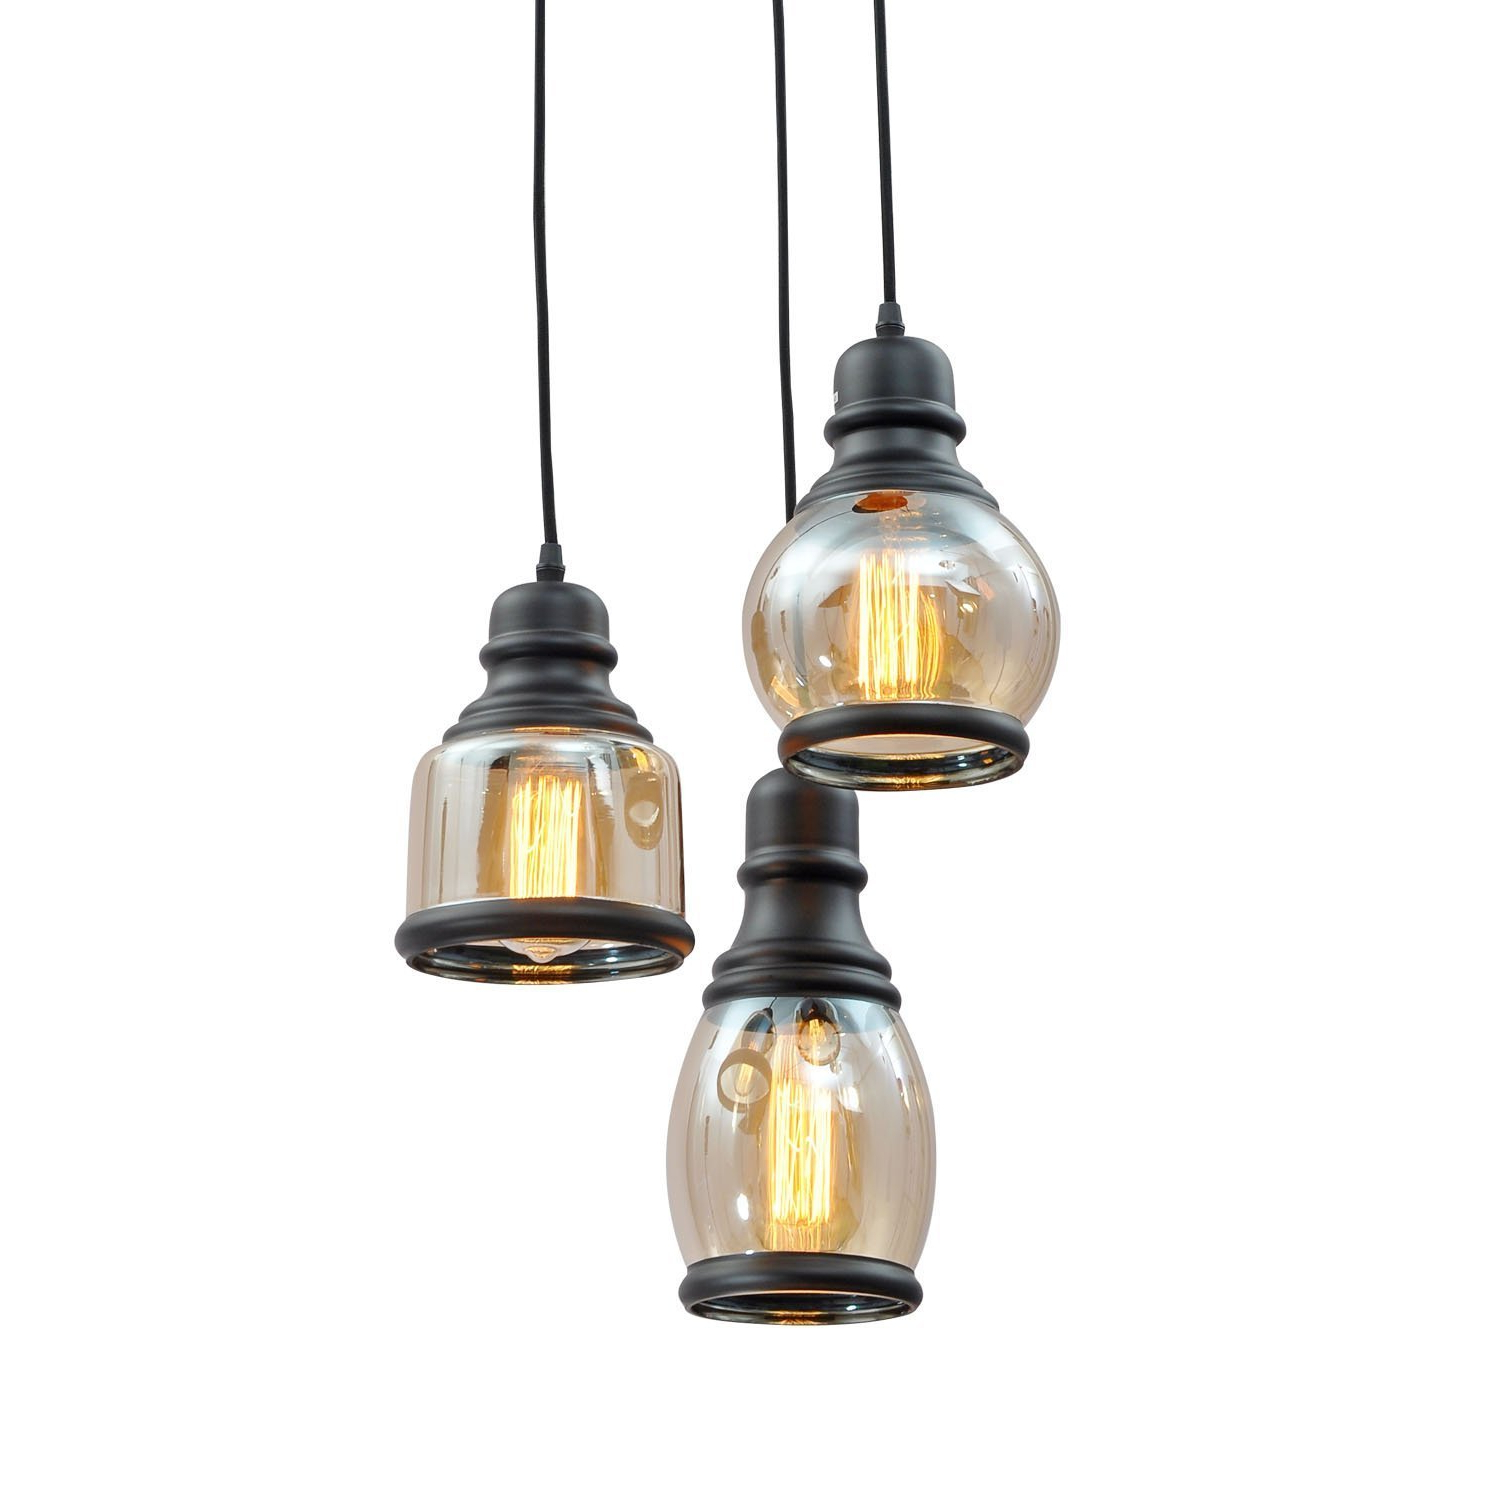 Taft Glass Jar 3 Light Cluster Pendant With Widely Used Vernice 3 Light Cluster Bell Pendants (View 9 of 25)